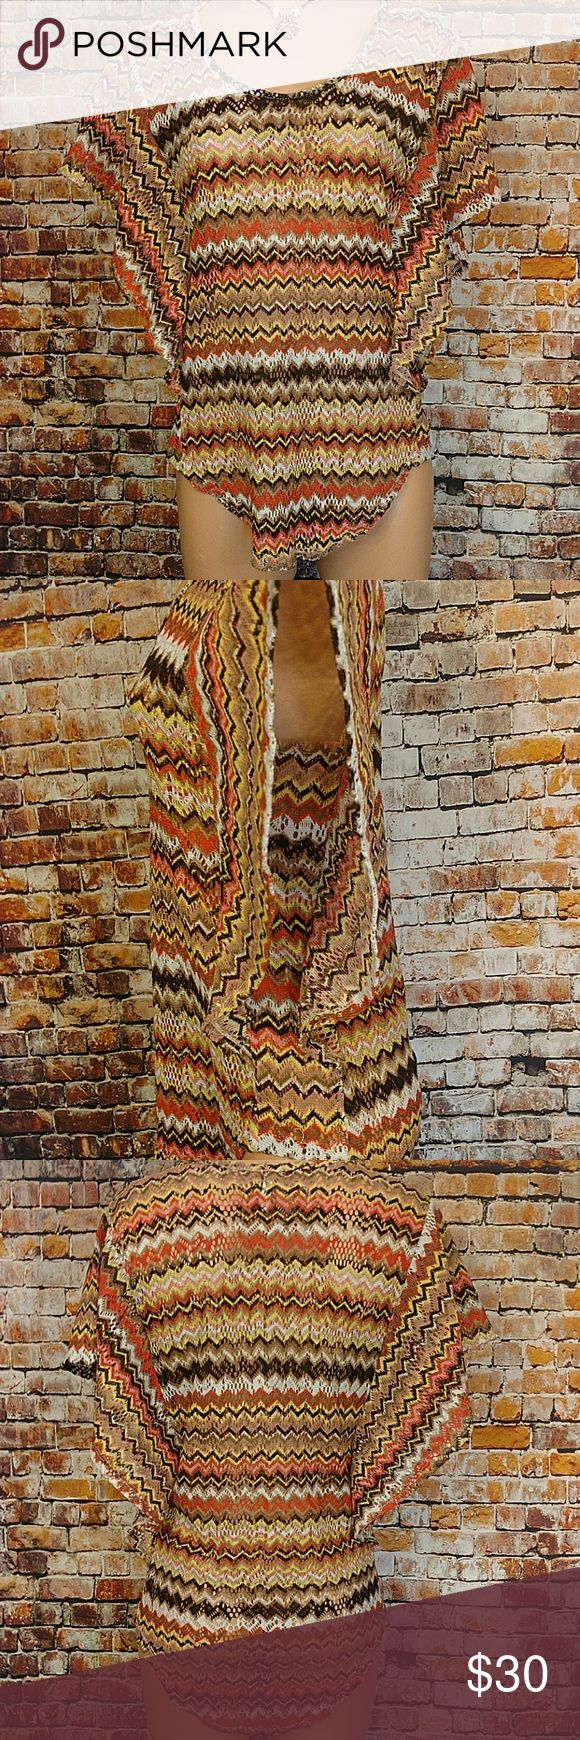 """Boho Cool Top Medium Open weave Bohemian, retro Batwing blouse. Neutral colors white brown tan yellow orange pink. Would need to be worn over a Camisole. No size tags please read measurements to ensure proper fit. 42"""" chest, 28.5"""" at the longest. Tops"""